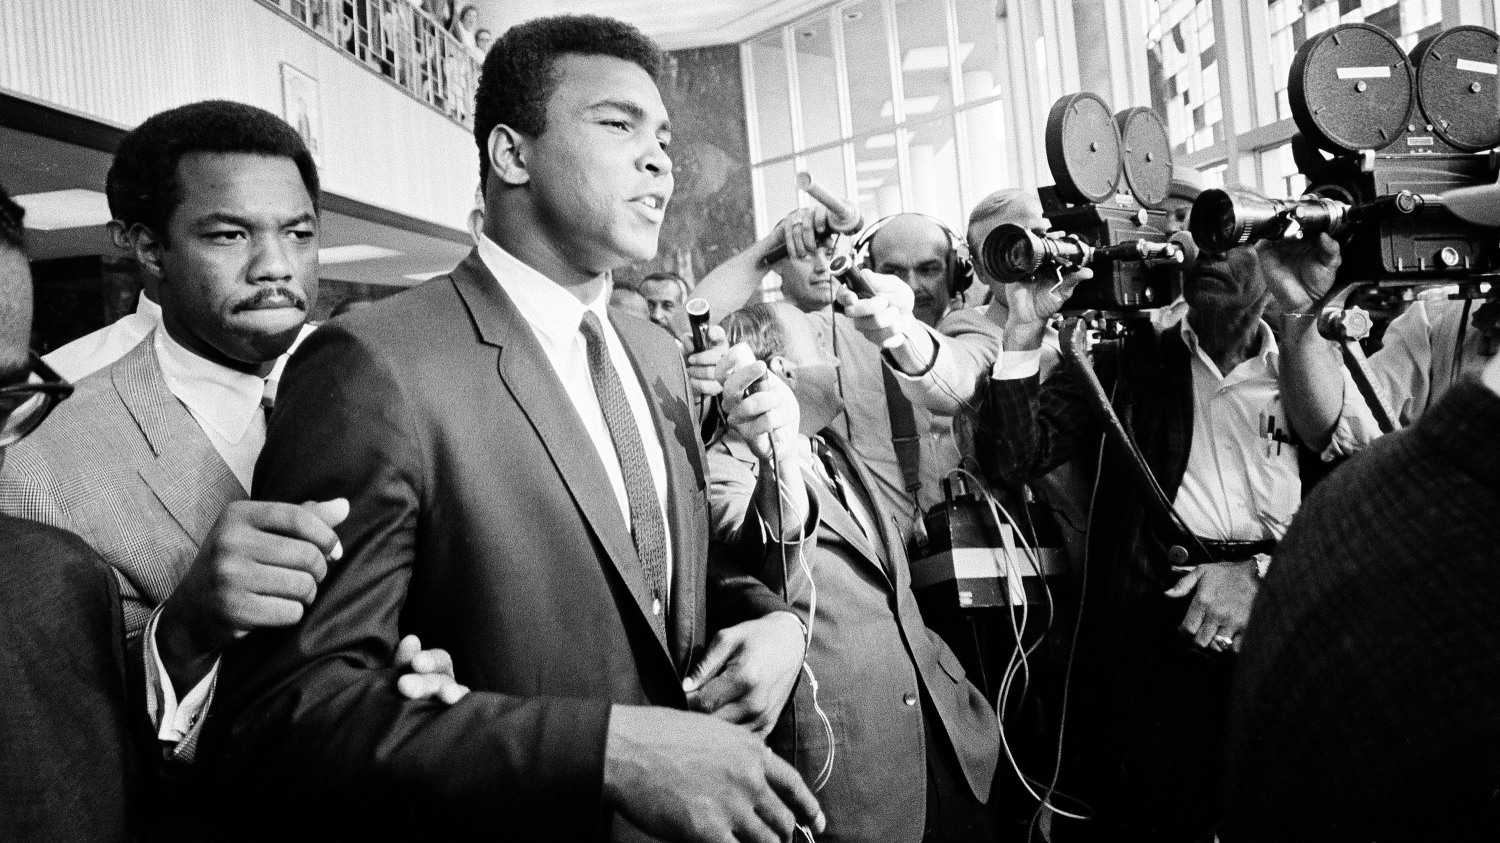 eddc10c0489 Heavyweight boxing champion Muhammad Ali said